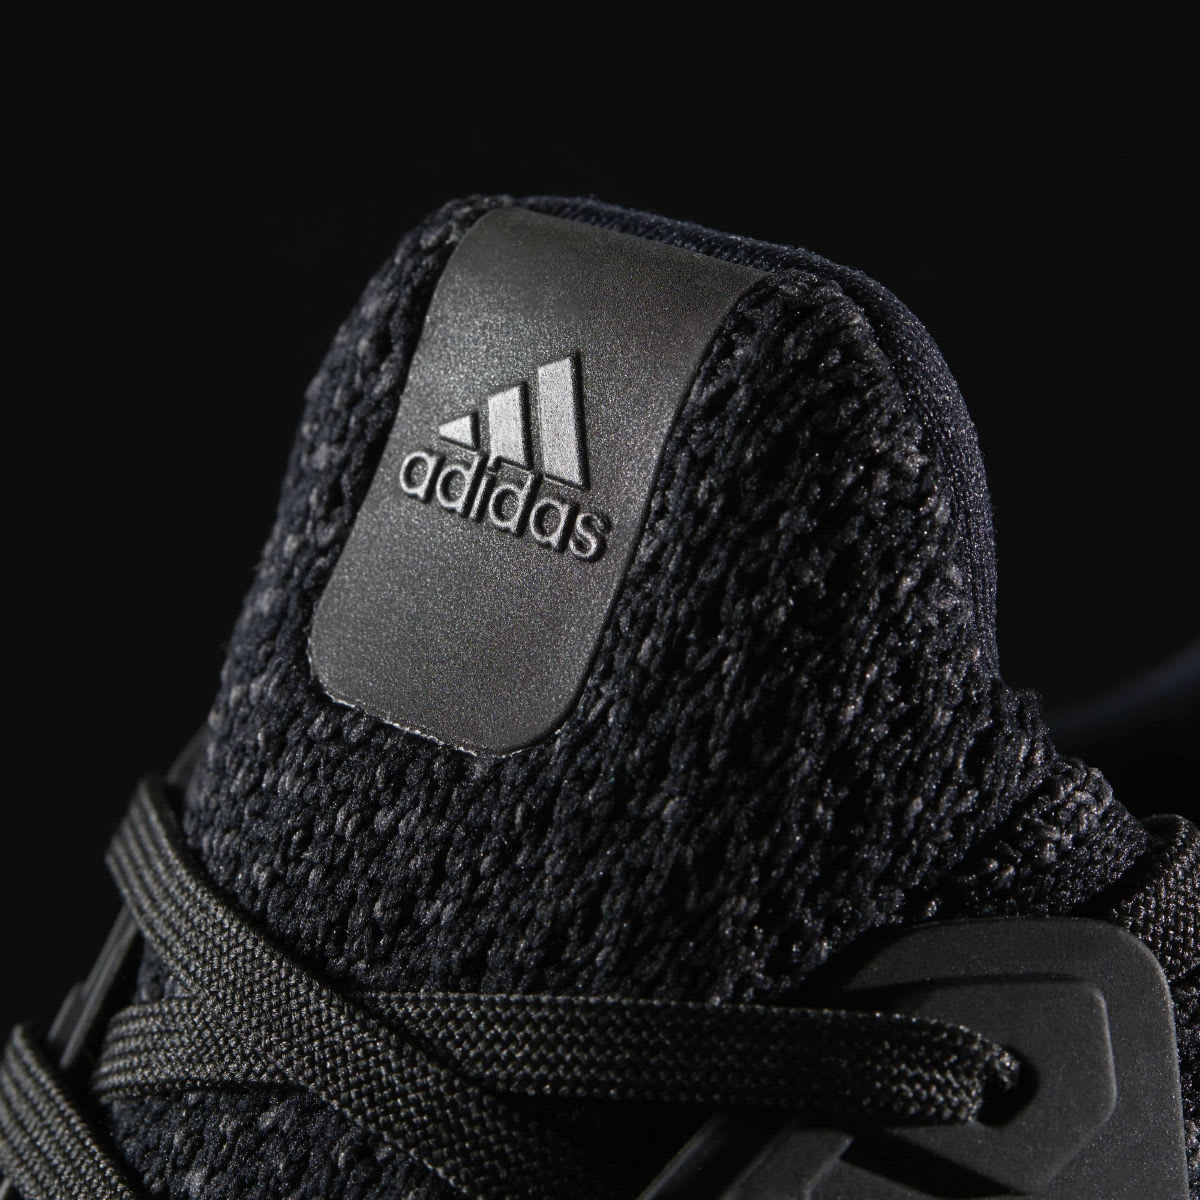 565b71f1644f6 coupon for adidas ultra boost 3.0 lgbt pride 8006e c4c6a  spain adidas  ultra boost pride release date tongue cp9632 a58a7 8ce60